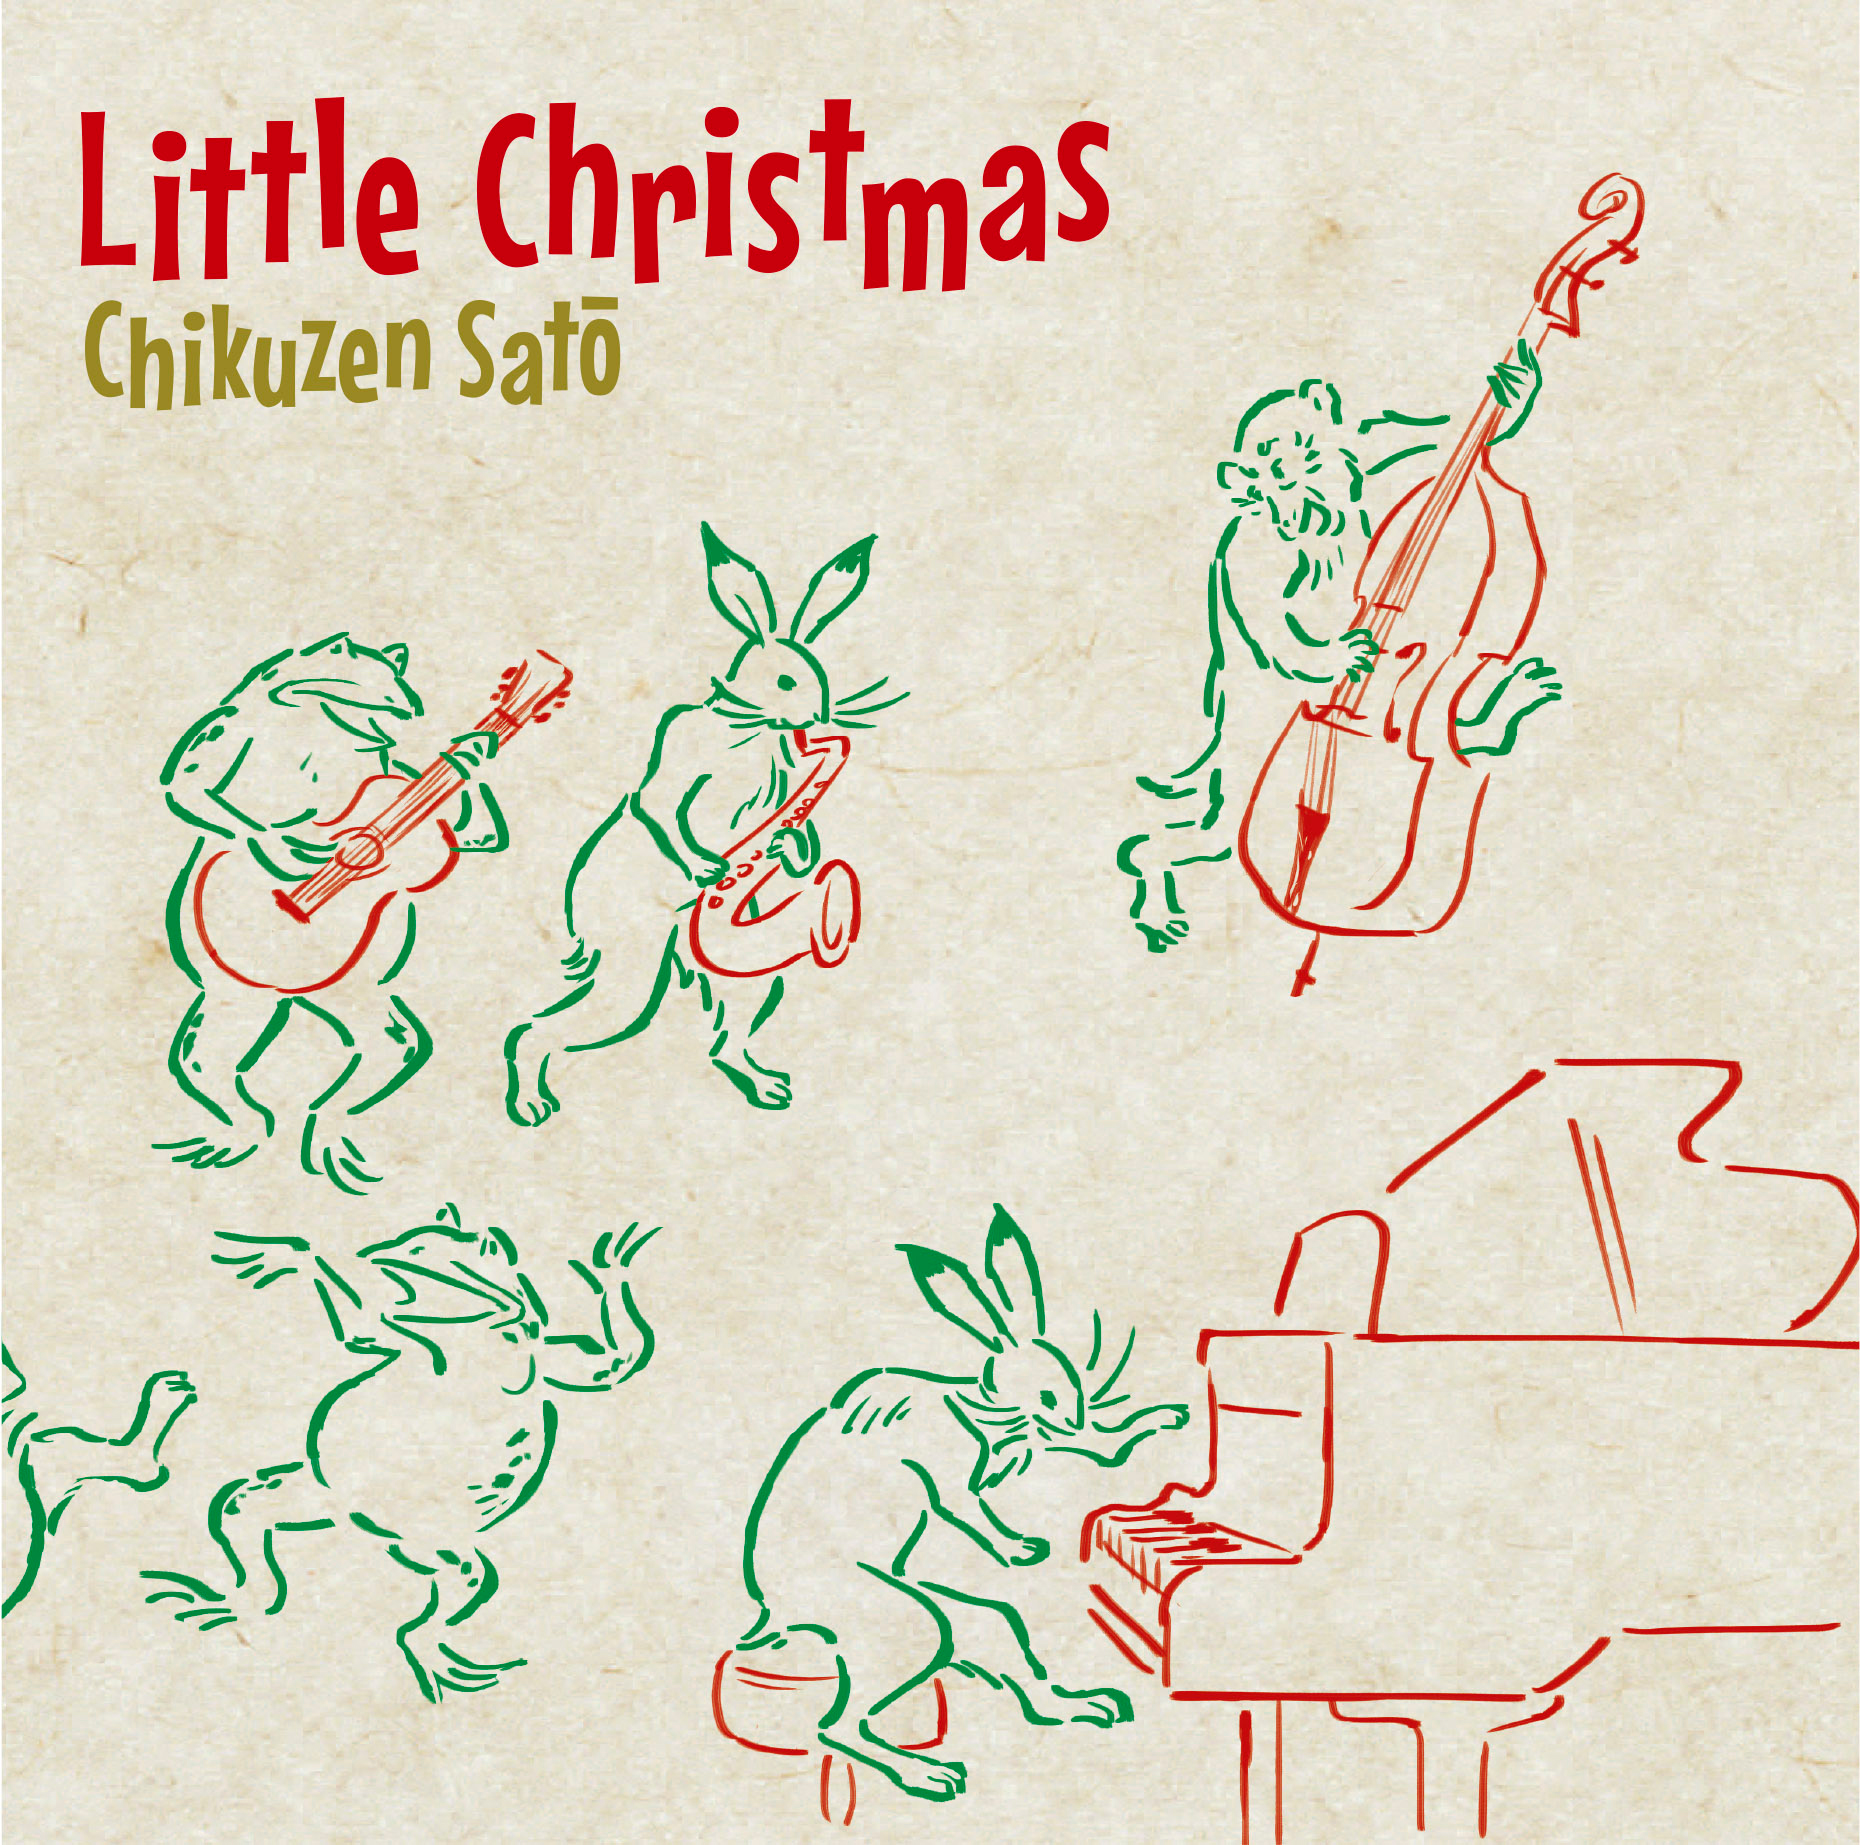 佐藤竹善『Little Christmas』